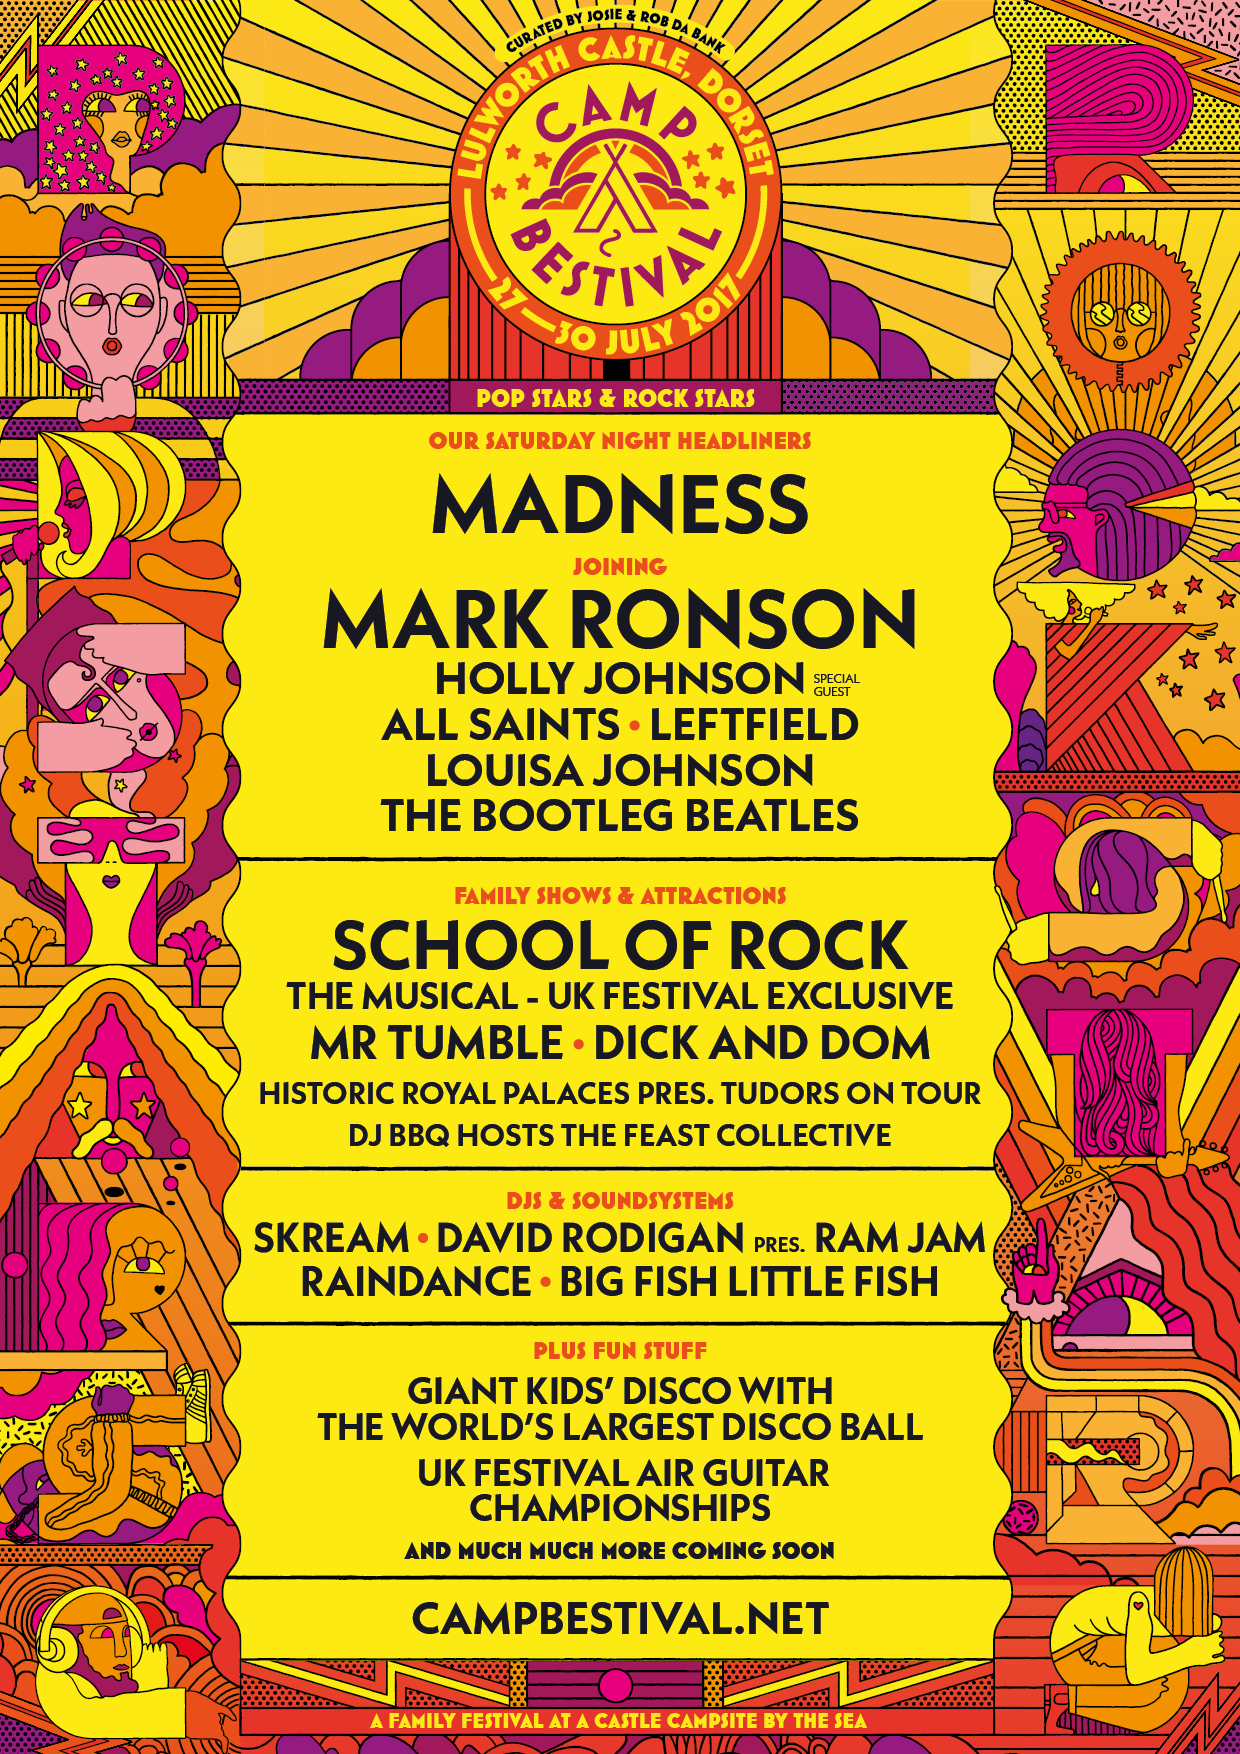 Gigs Image 1 for Camp Bestival, Dorset, UK